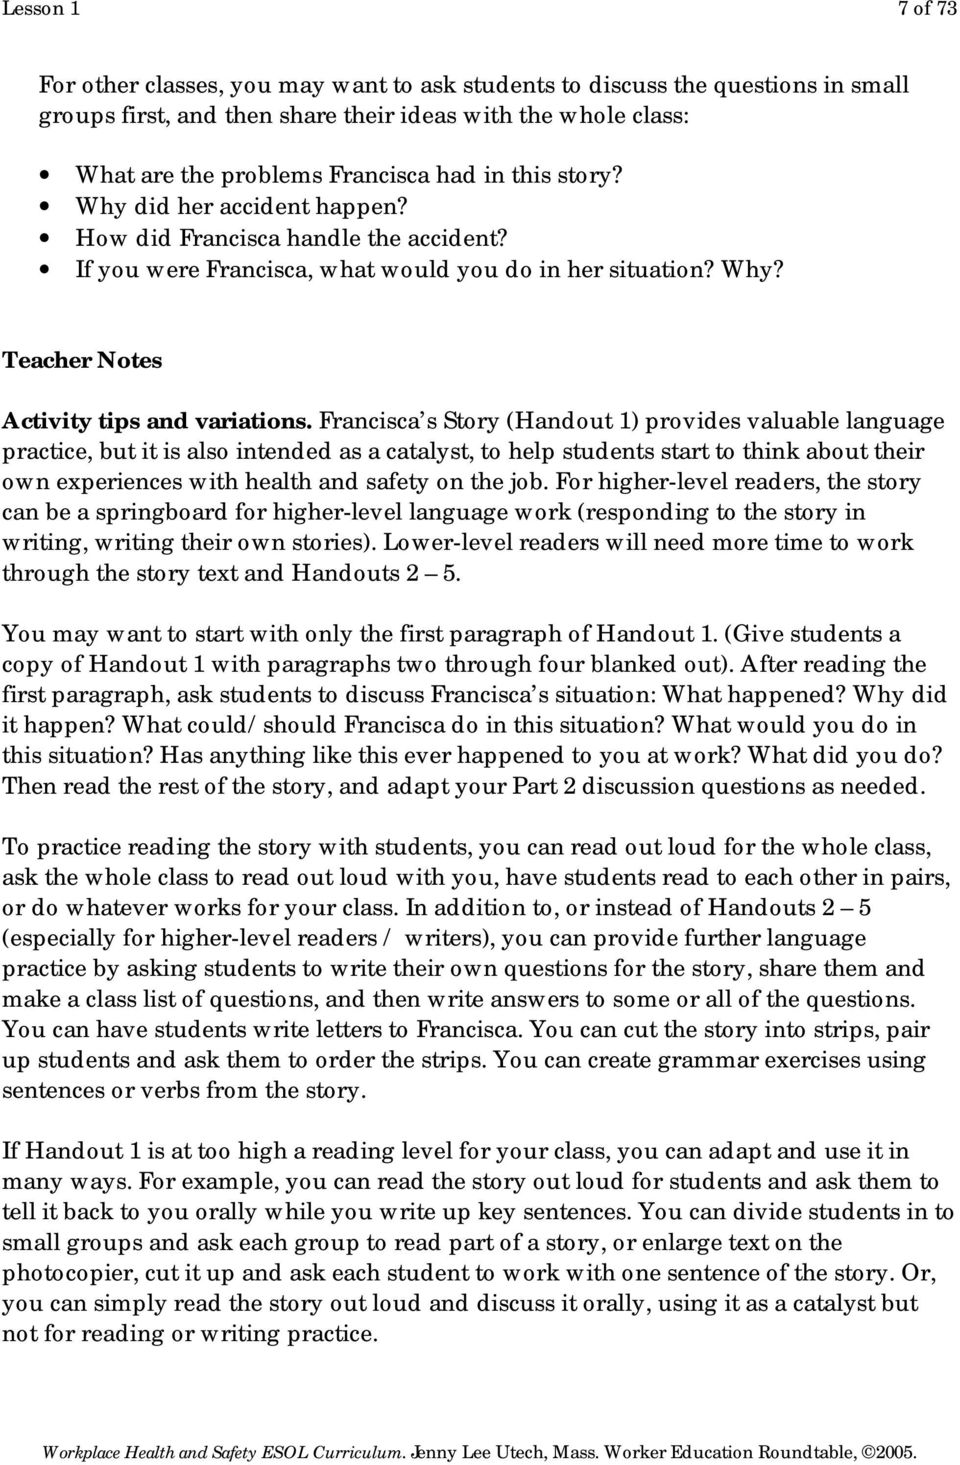 Francisca s Story (Handout 1) provides valuable language practice, but it is also intended as a catalyst, to help students start to think about their own experiences with health and safety on the job.